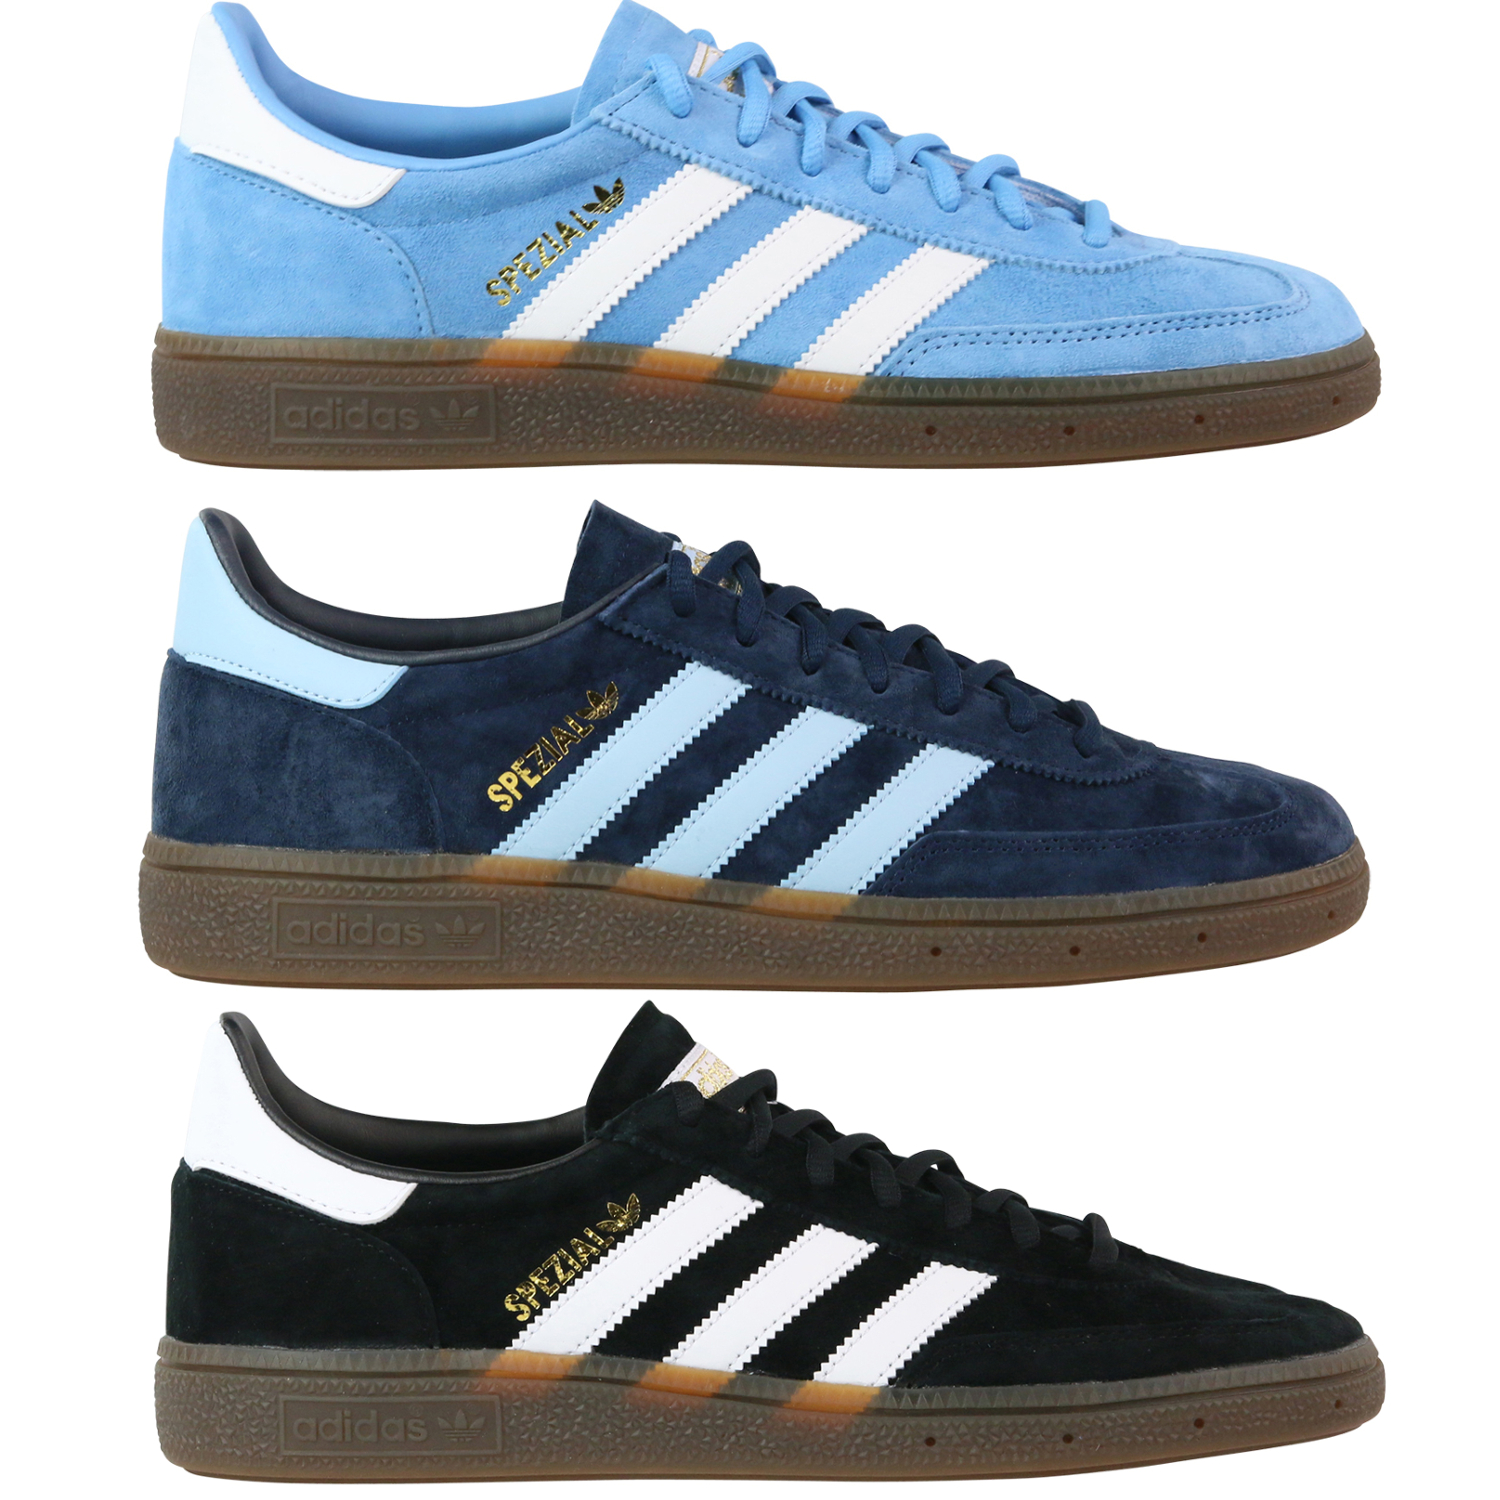 best quality cheapest price good selling Details zu adidas Originals Handball Spezial Sneaker Schuhe Herren Damen